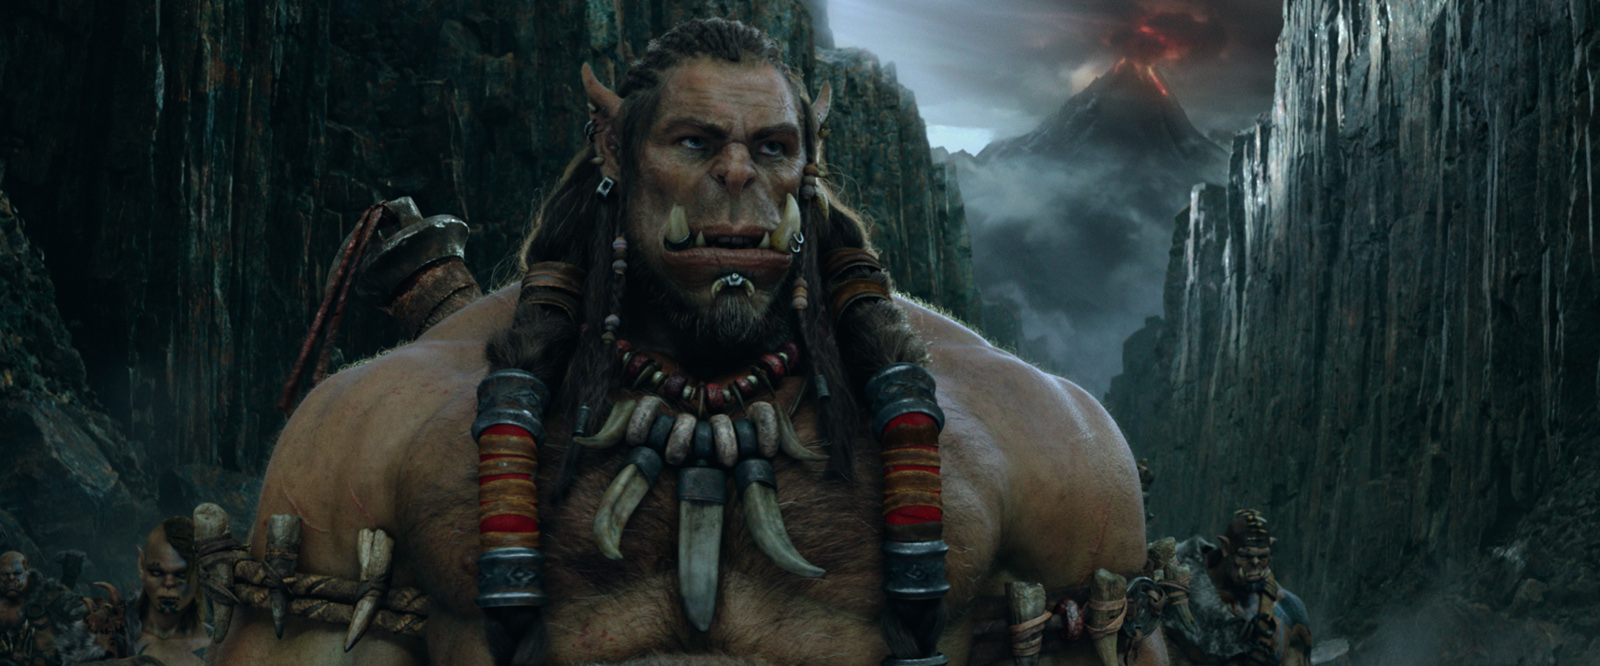 WARCRAFT MOVIE - Image 43 du film Duncan Jones 2016 - Go with the Blog